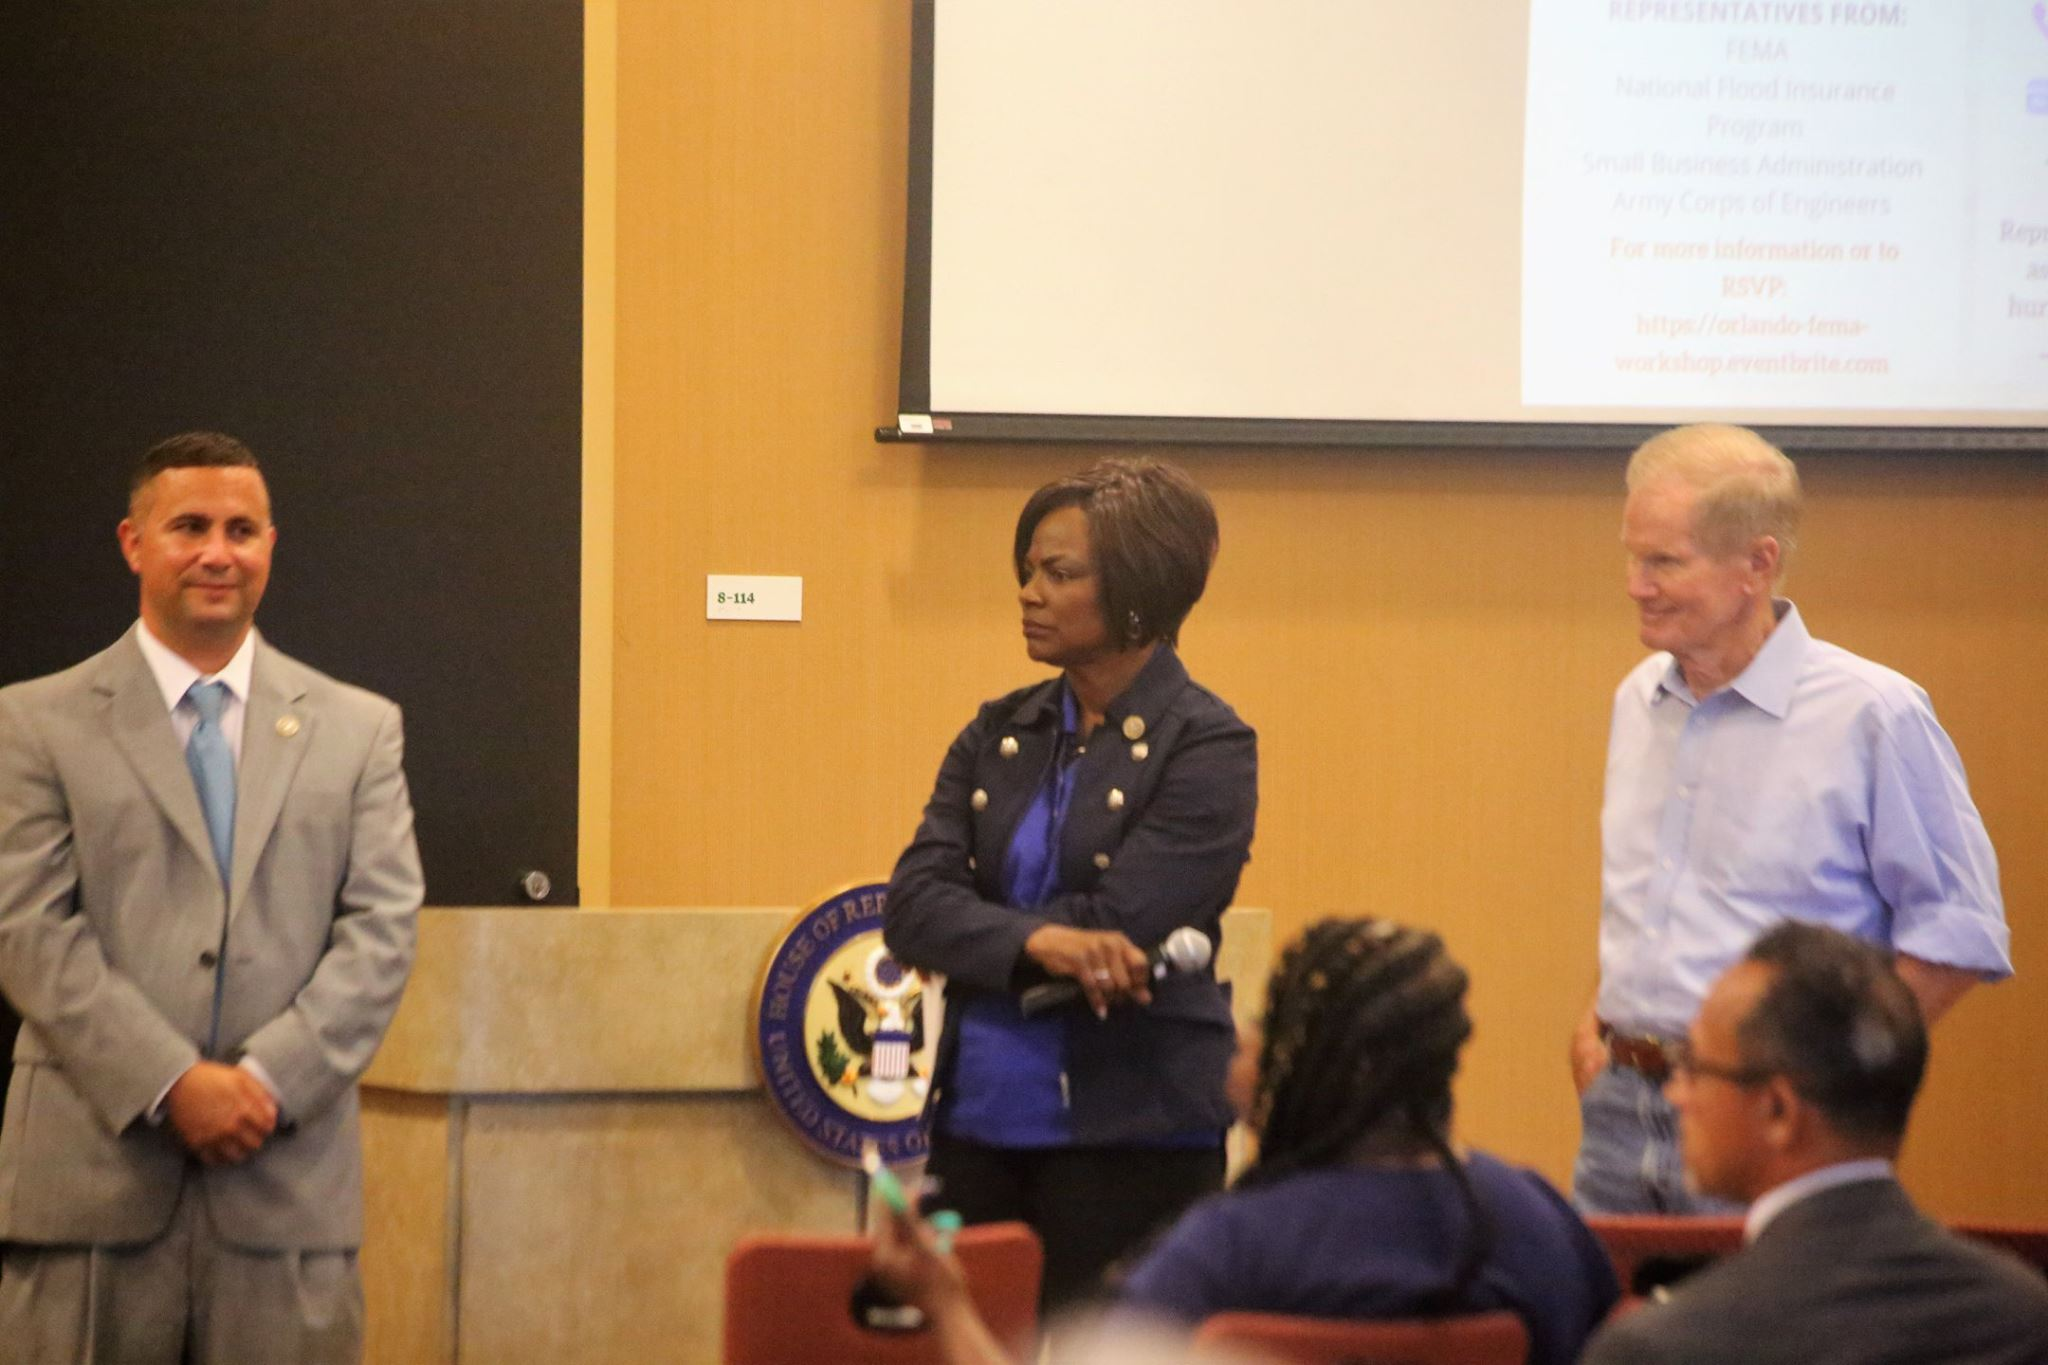 ORLANDO (FNN NEWS) - U.S. Representatives Val Demings (center) and Darren Soto (left), with U.S. Senator Bill Nelson on hand, held an informative disaster assistance workshop at Valencia College's west campus Monday. Photo: Willie David/Florida National News.